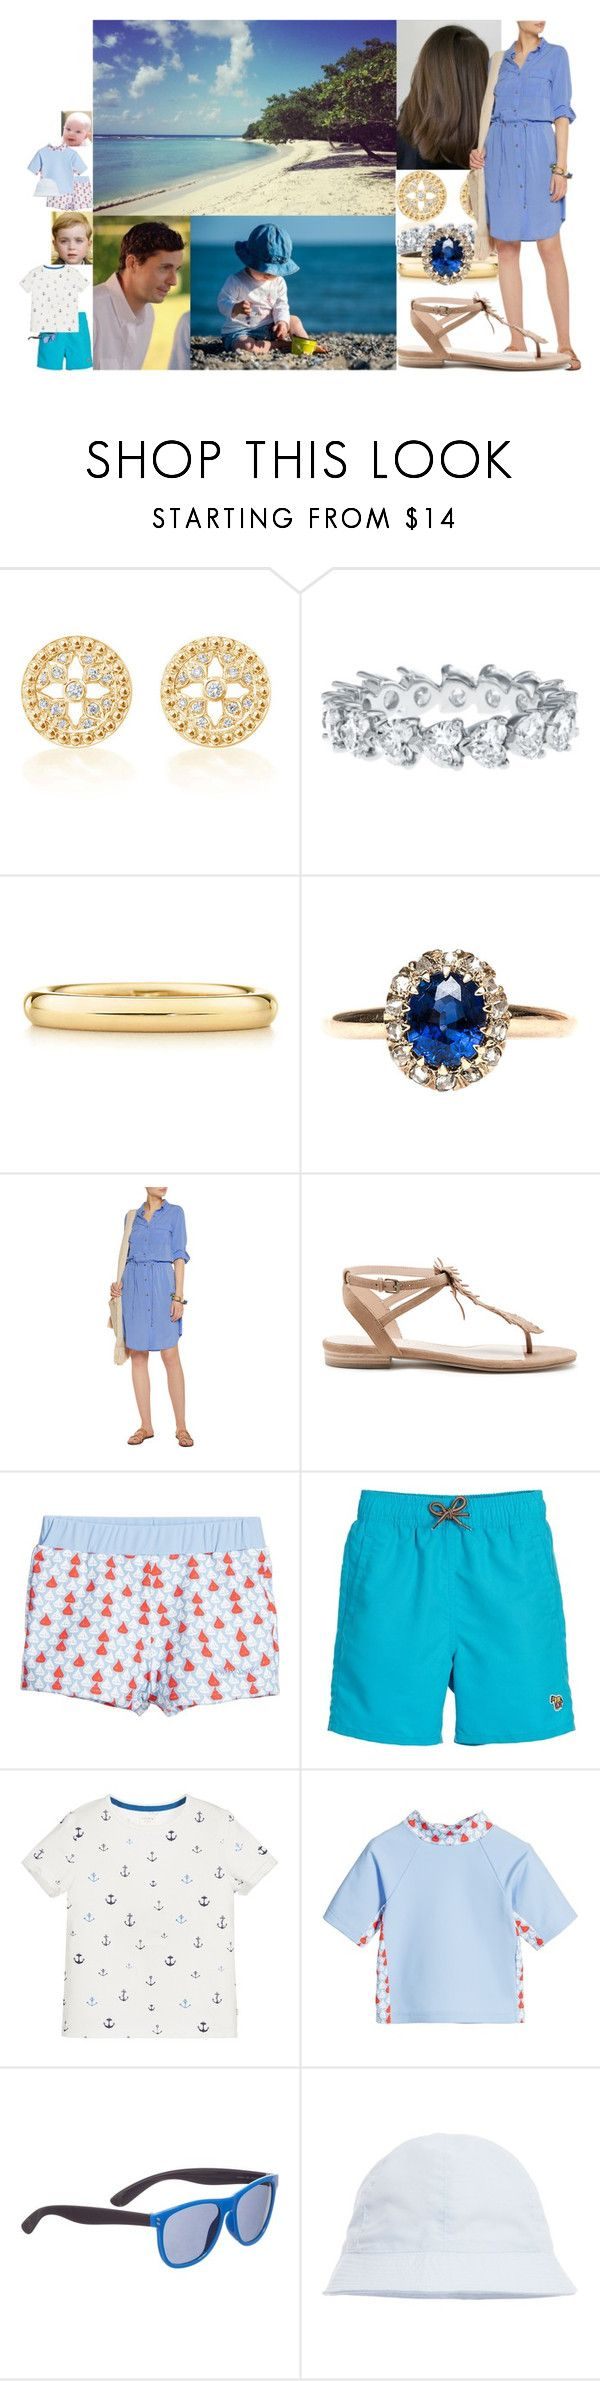 Making sandcastles with the boys down on the beach by lady-maud on Polyvore featuring Melissa Odabash, Sole Society, Elsa Peretti, Paul Smith, Laranjinha and STELLA McCARTNEY